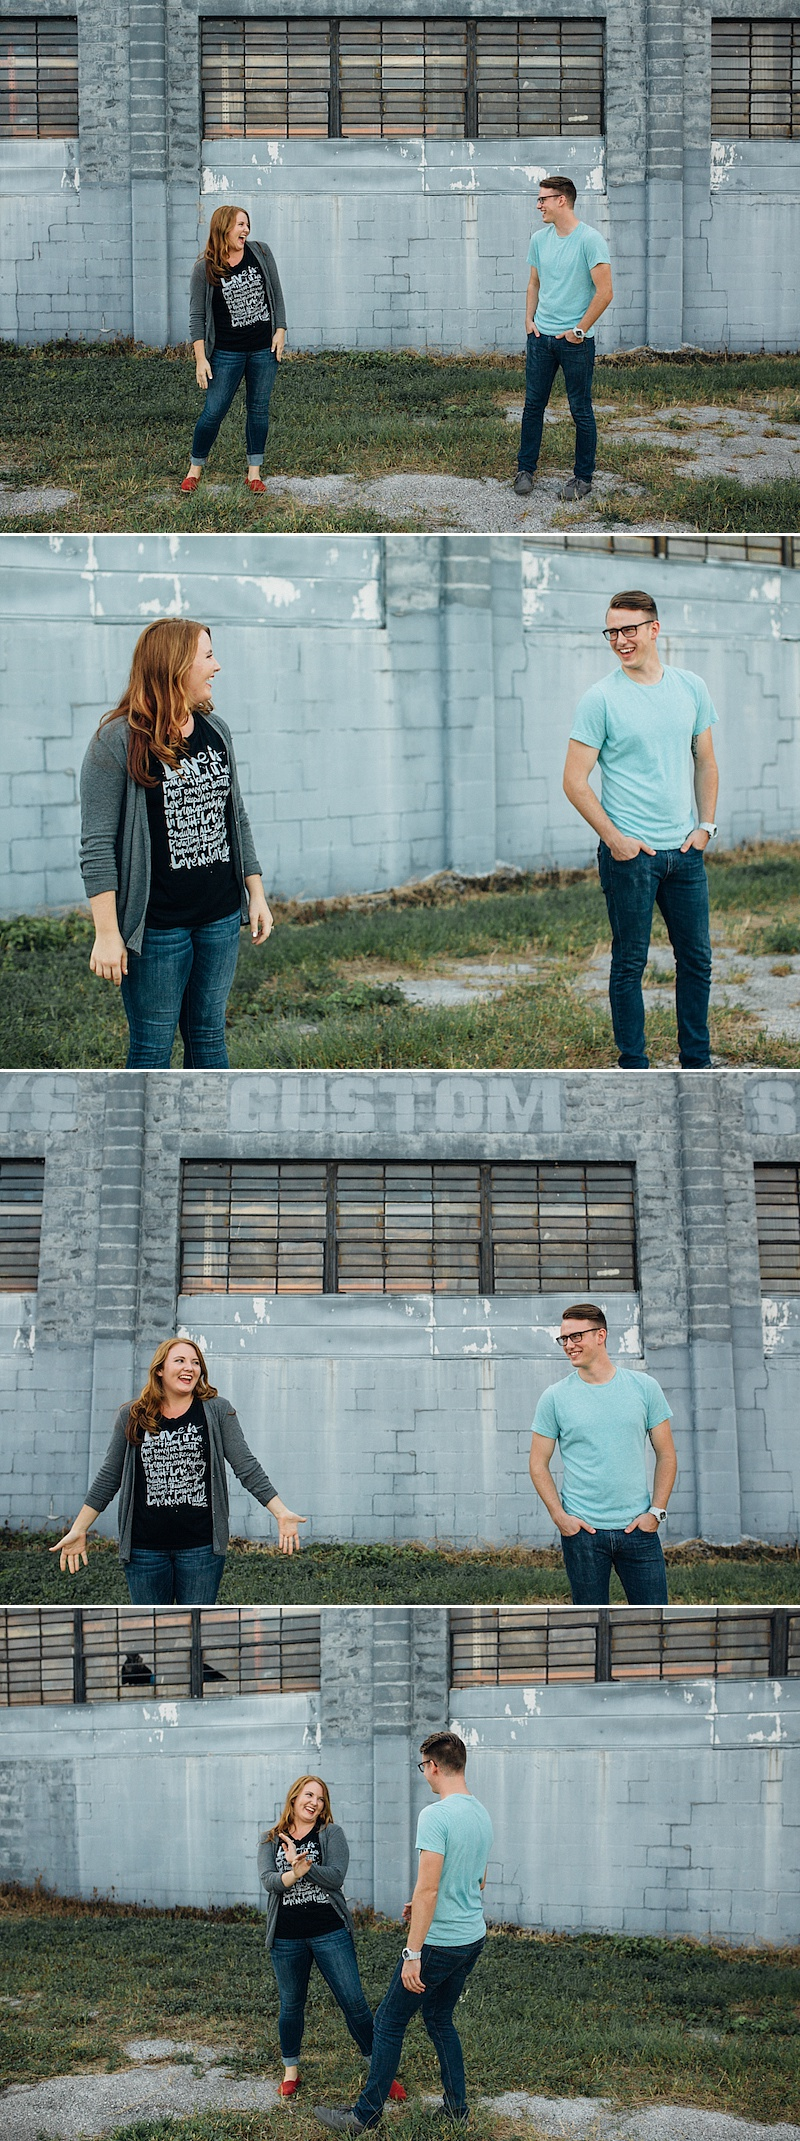 tampa ybor urban engagement photos-4.jpg